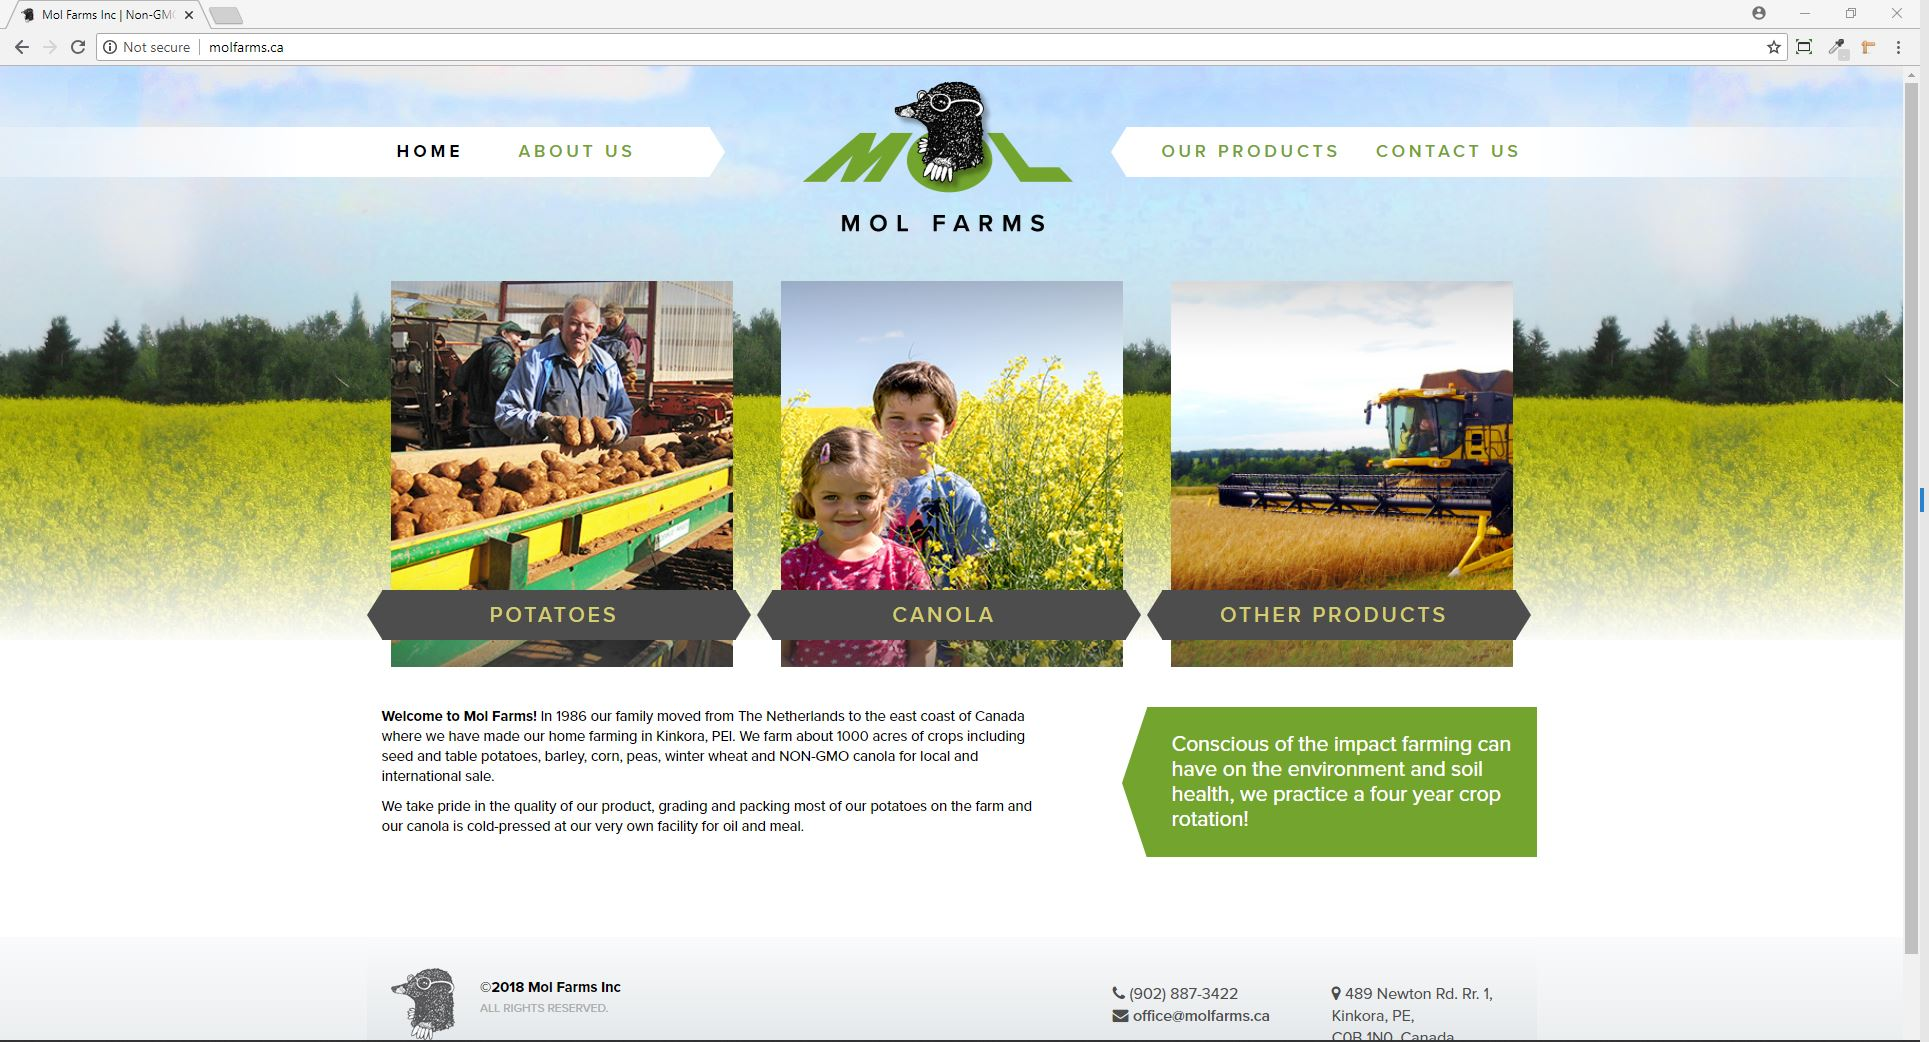 Mol Farms